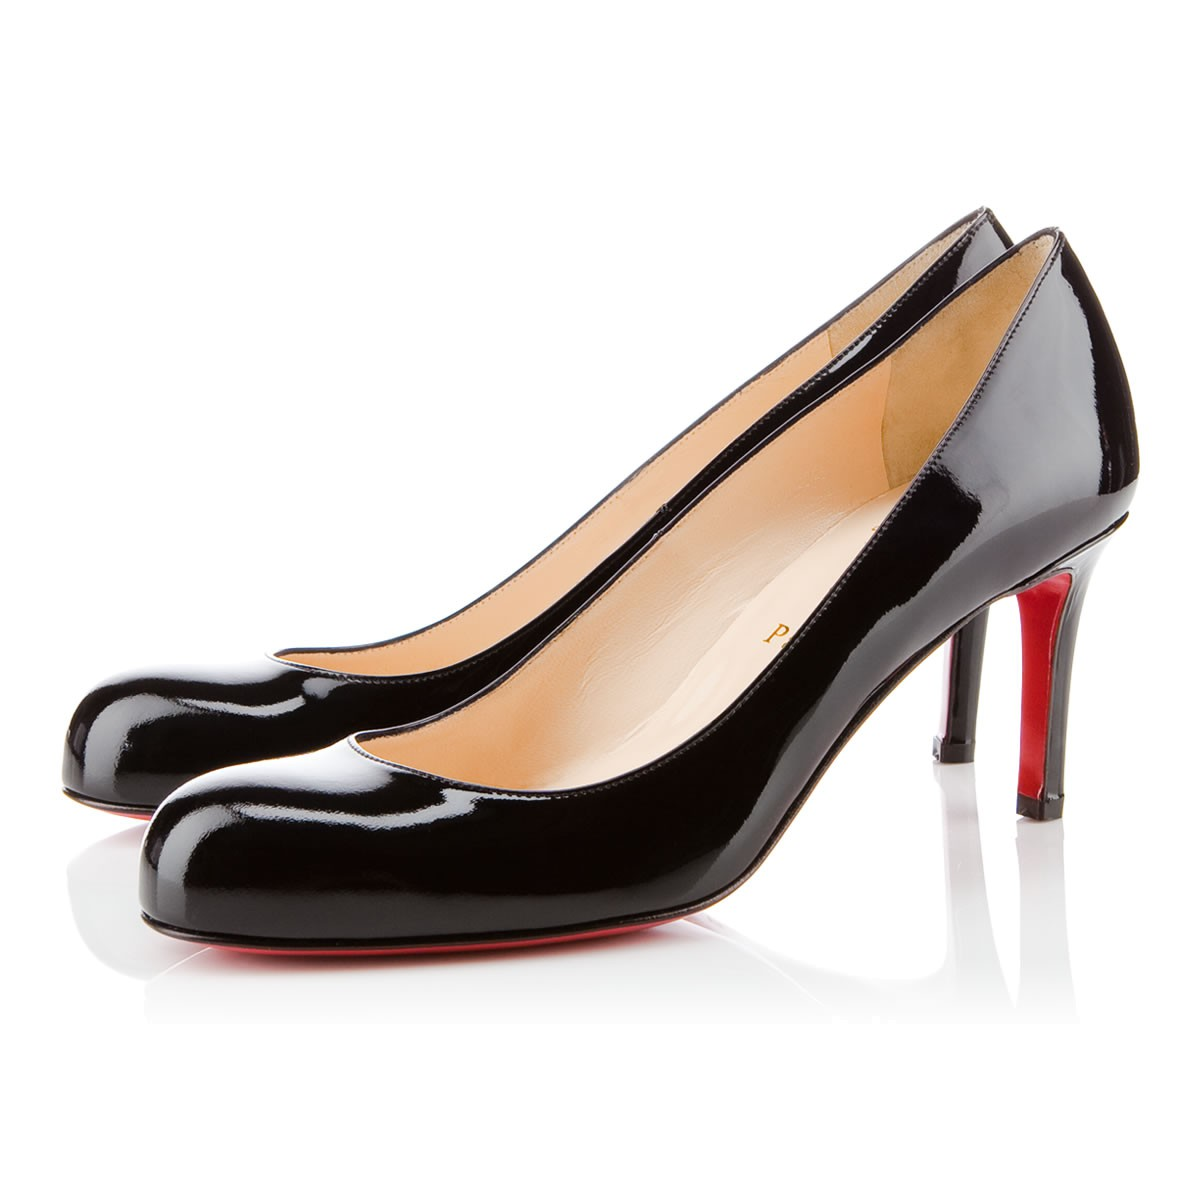 09f04dec19001 Christian Louboutin Patent Leather Brogue Pumps Latest For Sale Cheap Sale  Pay With Visa Sneakernews Cheap